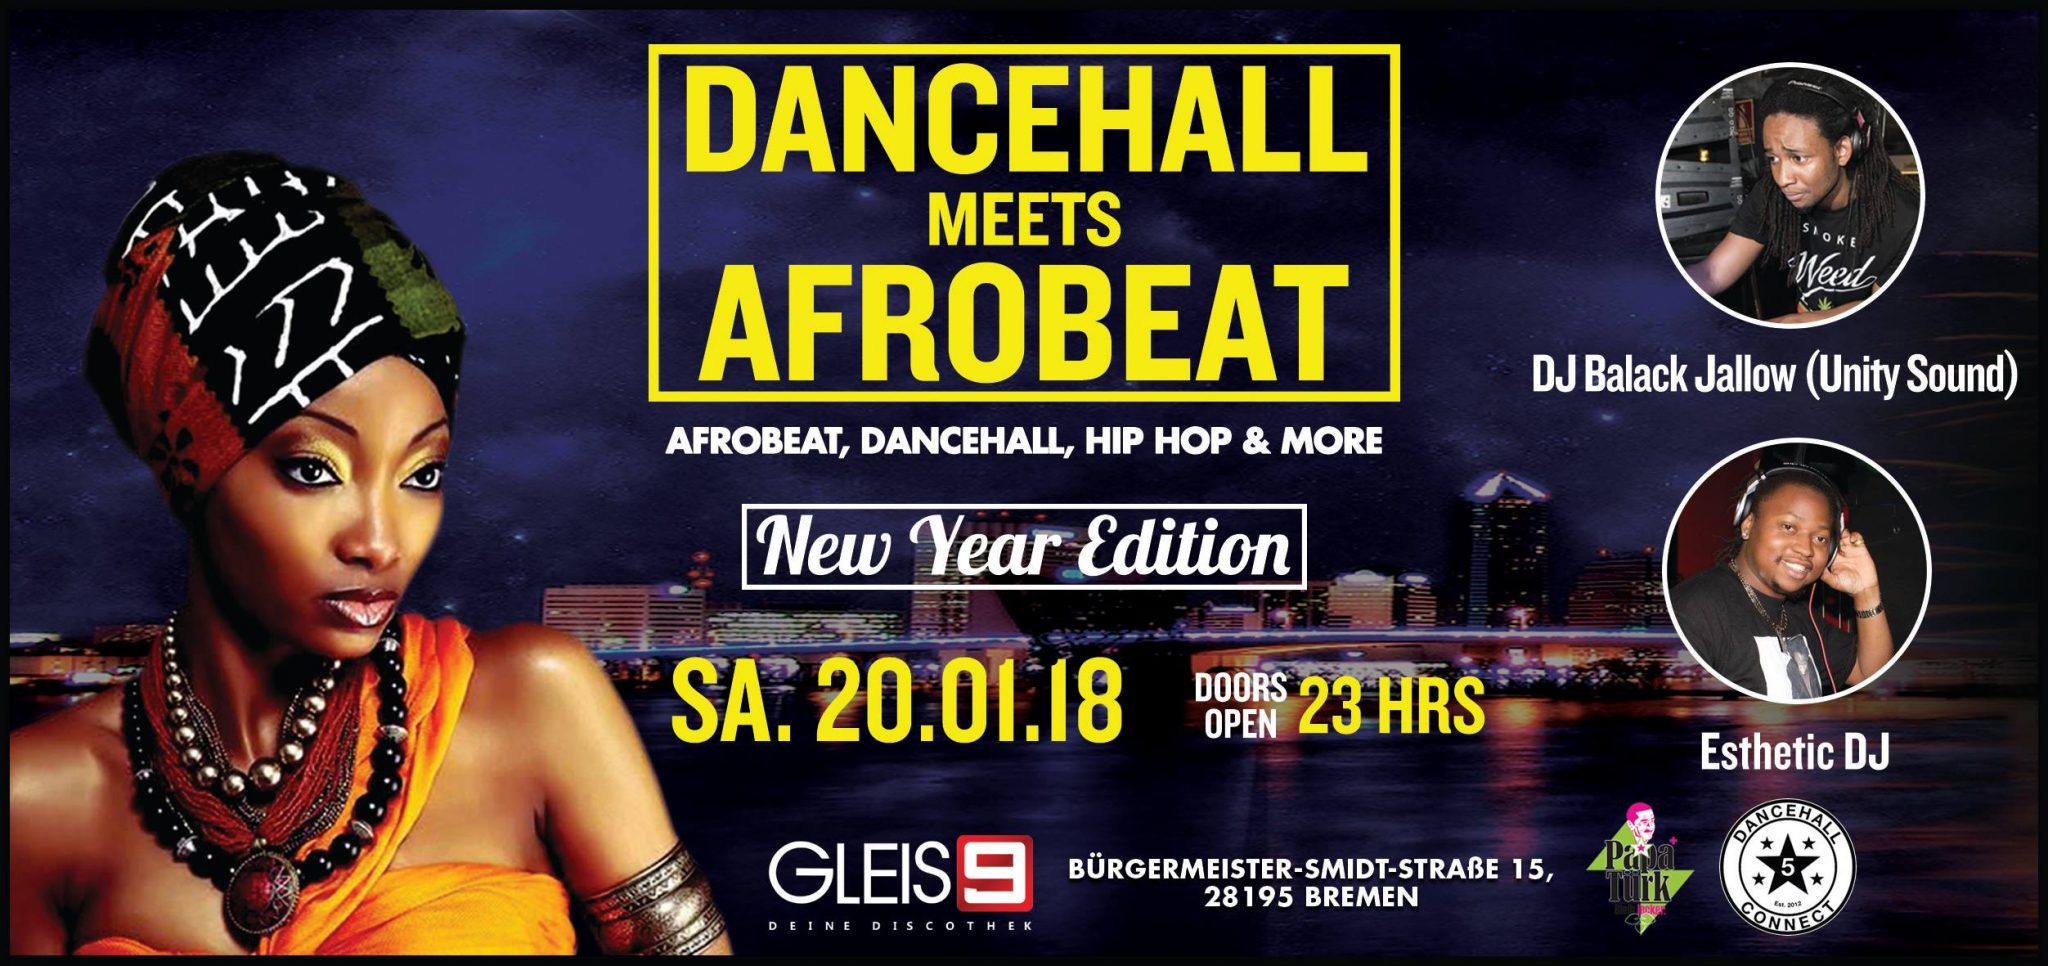 Dancehall meets Afrobeat ´New Year Edition´